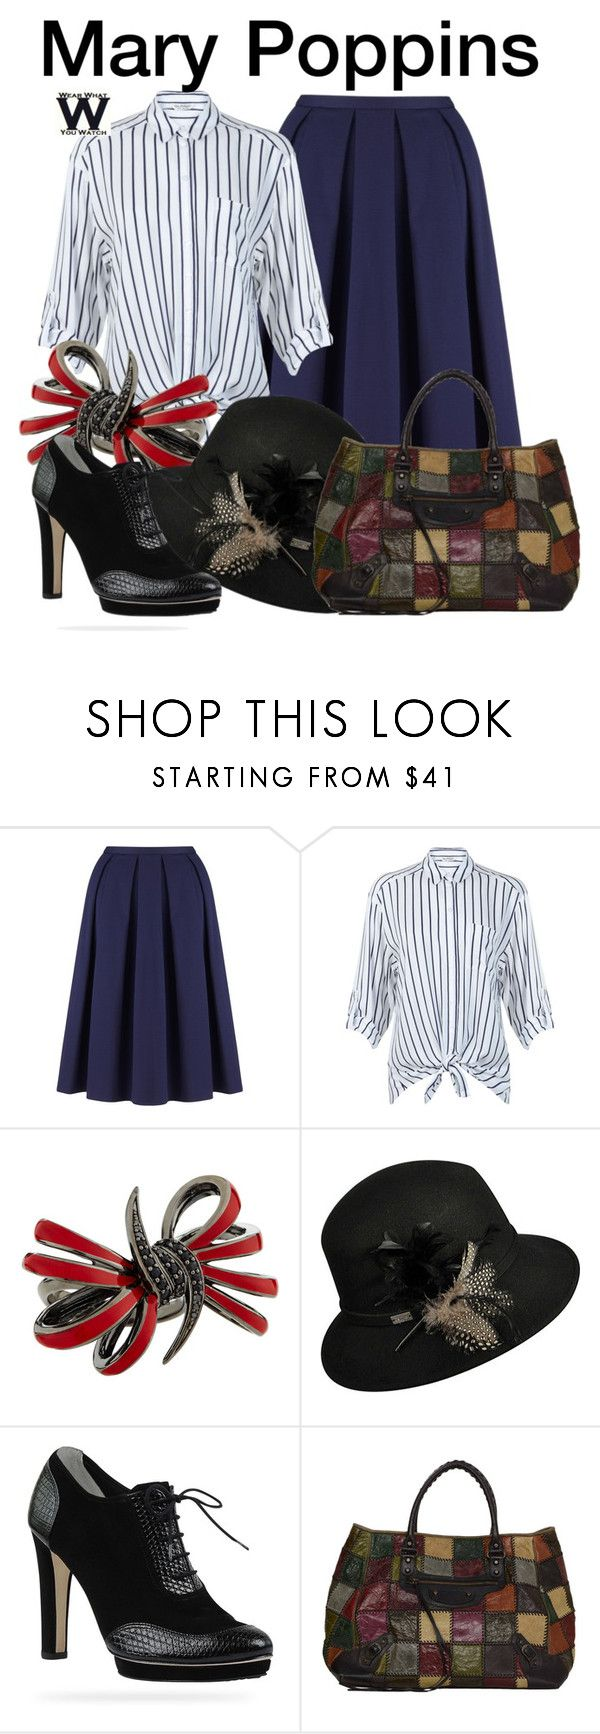 """Mary Poppins"" by wearwhatyouwatch ❤ liked on Polyvore featuring John Lewis, Miss Selfridge, Stephen Webster, Betmar, Oxford, Balenciaga, disney, wearwhatyouwatch and film"